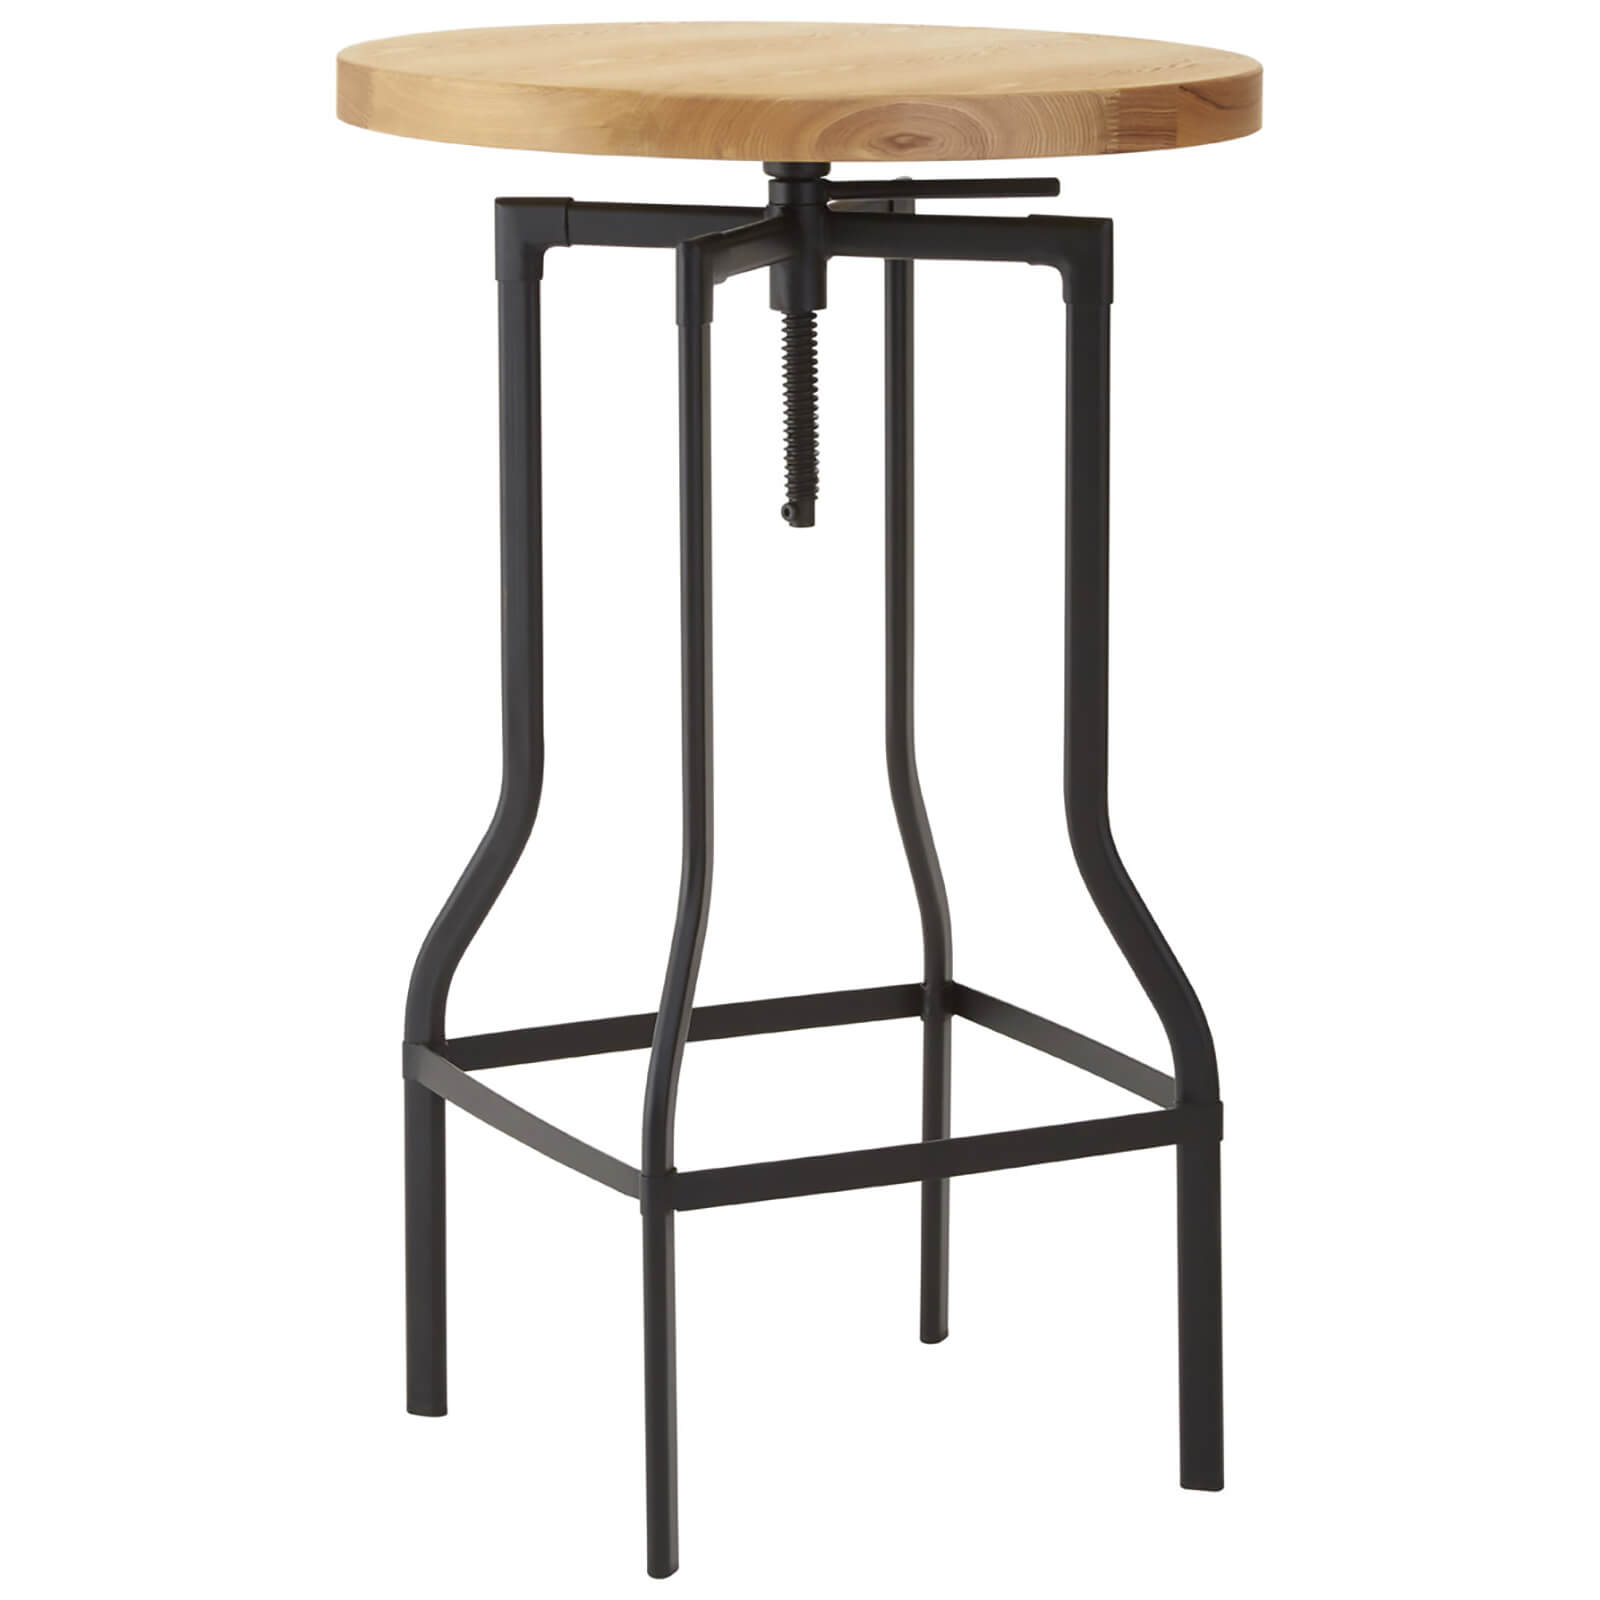 Fifty Five South New Foundry Bar Table - Black